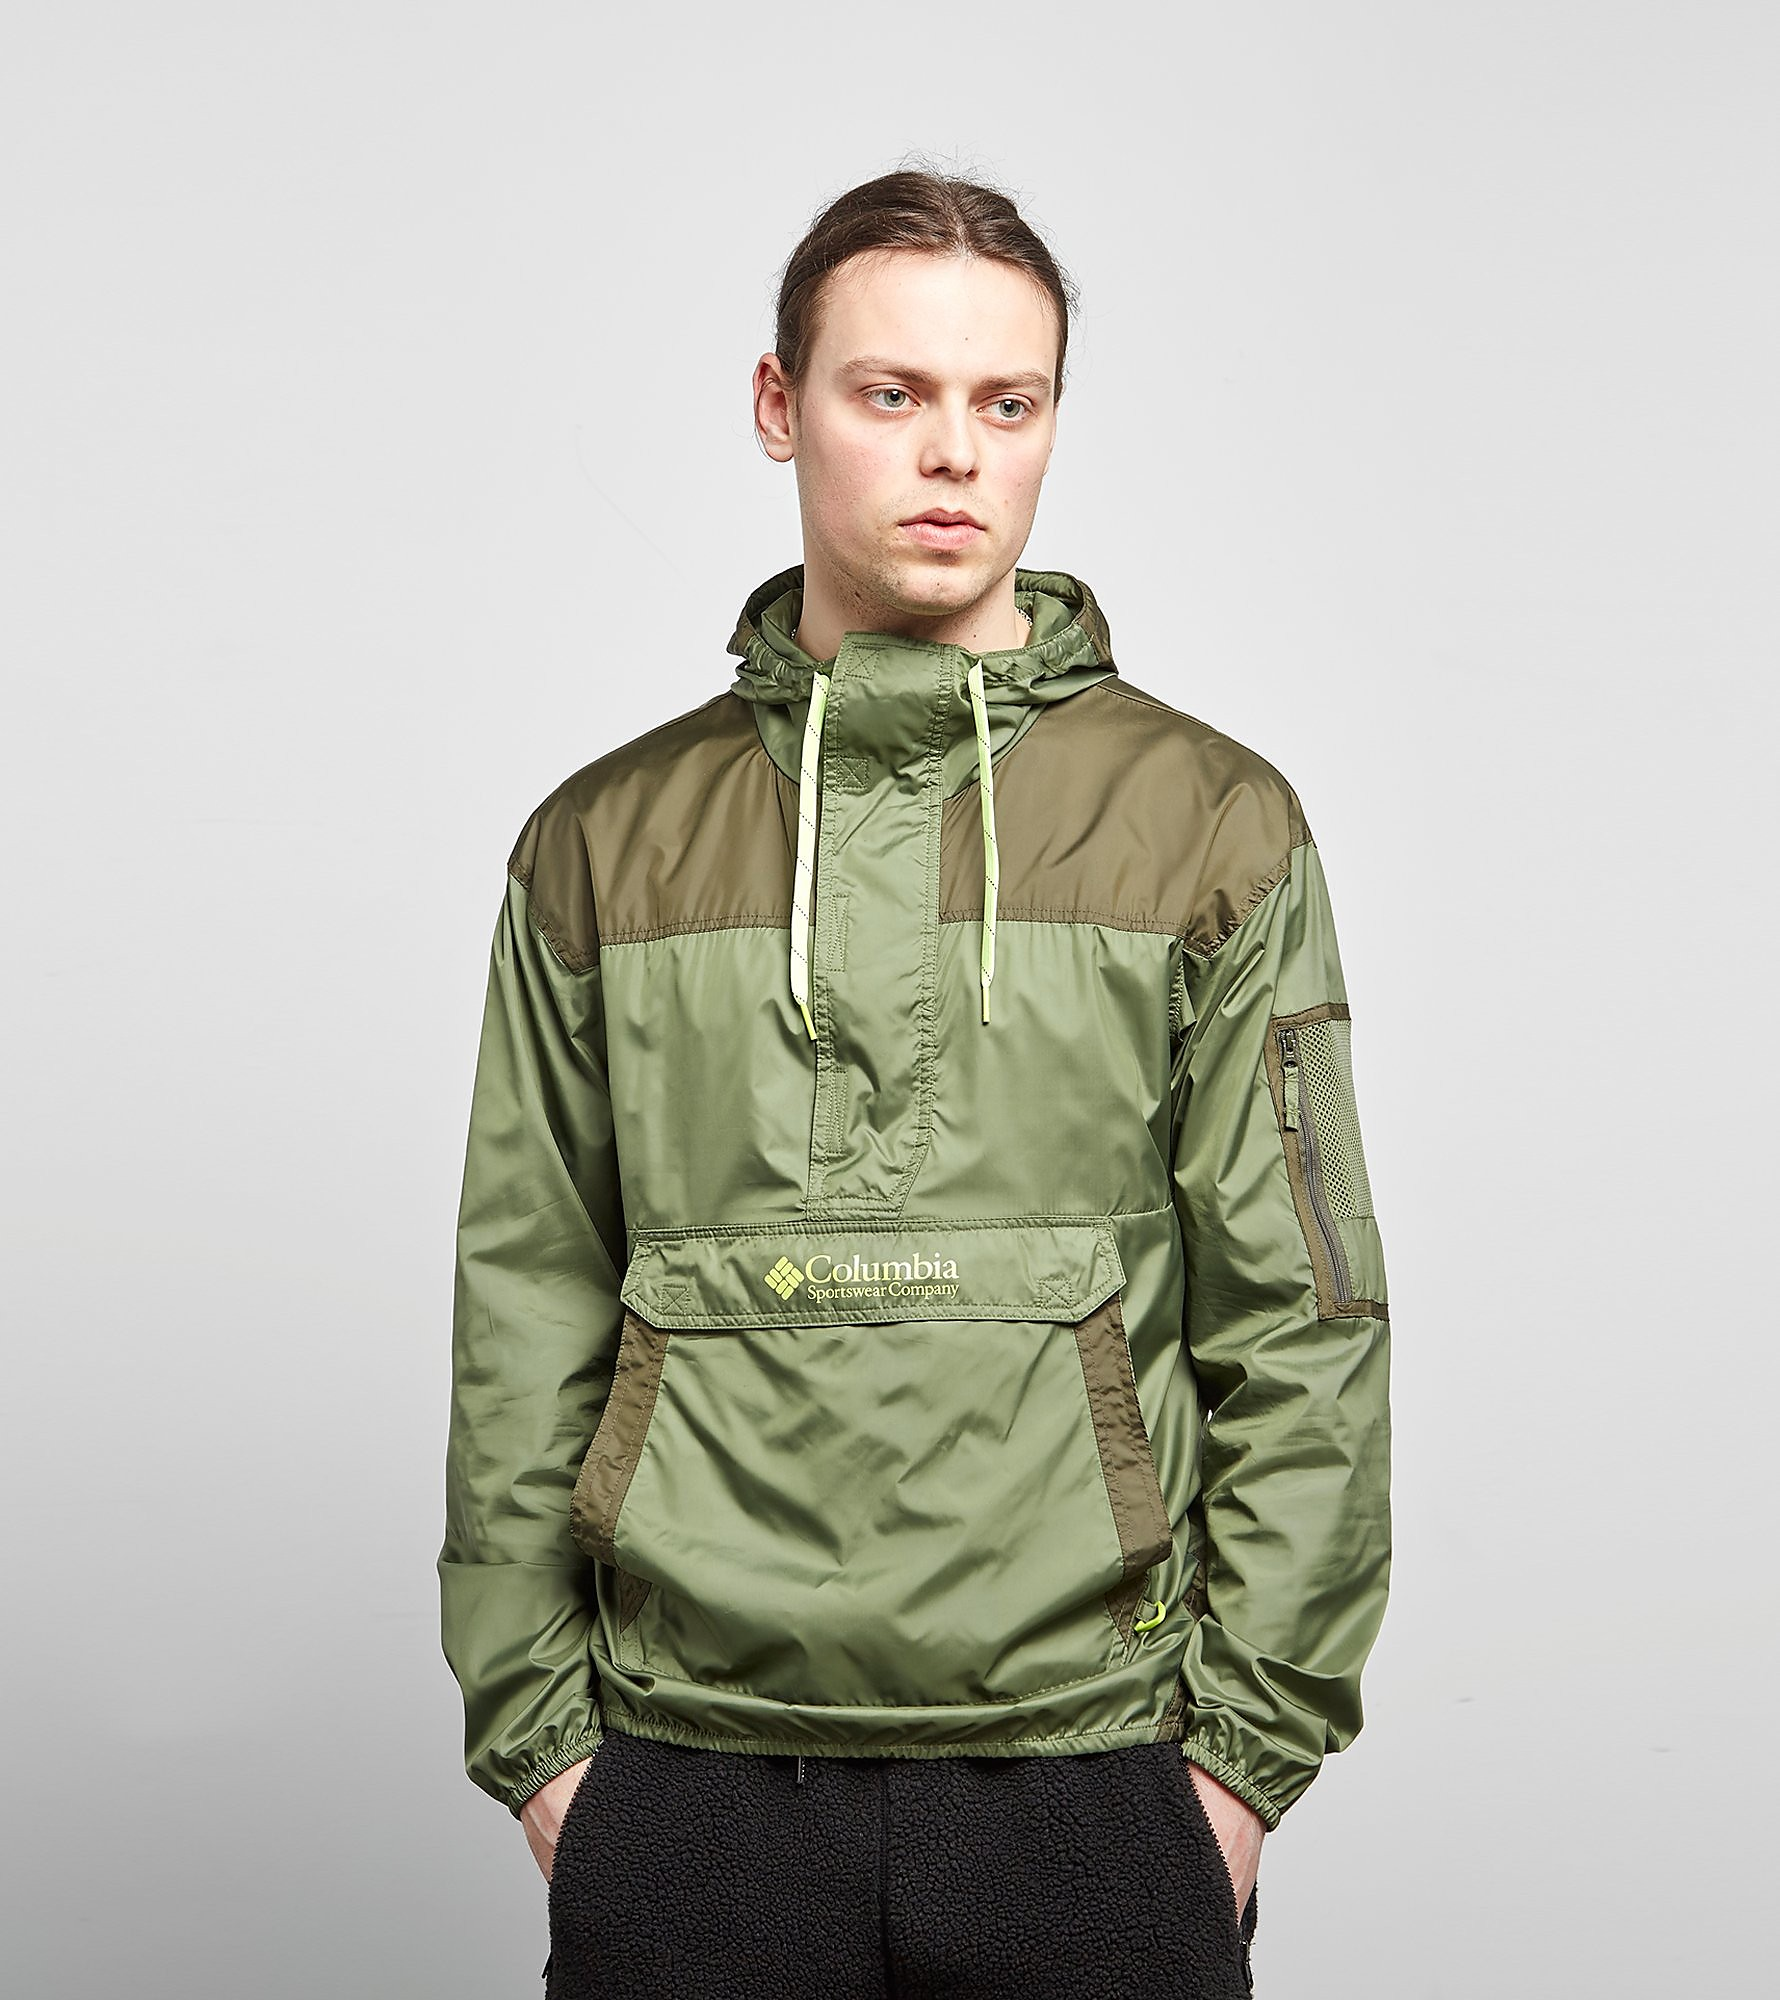 Columbia Challenger Lightweight 1/2 Zip Jacket